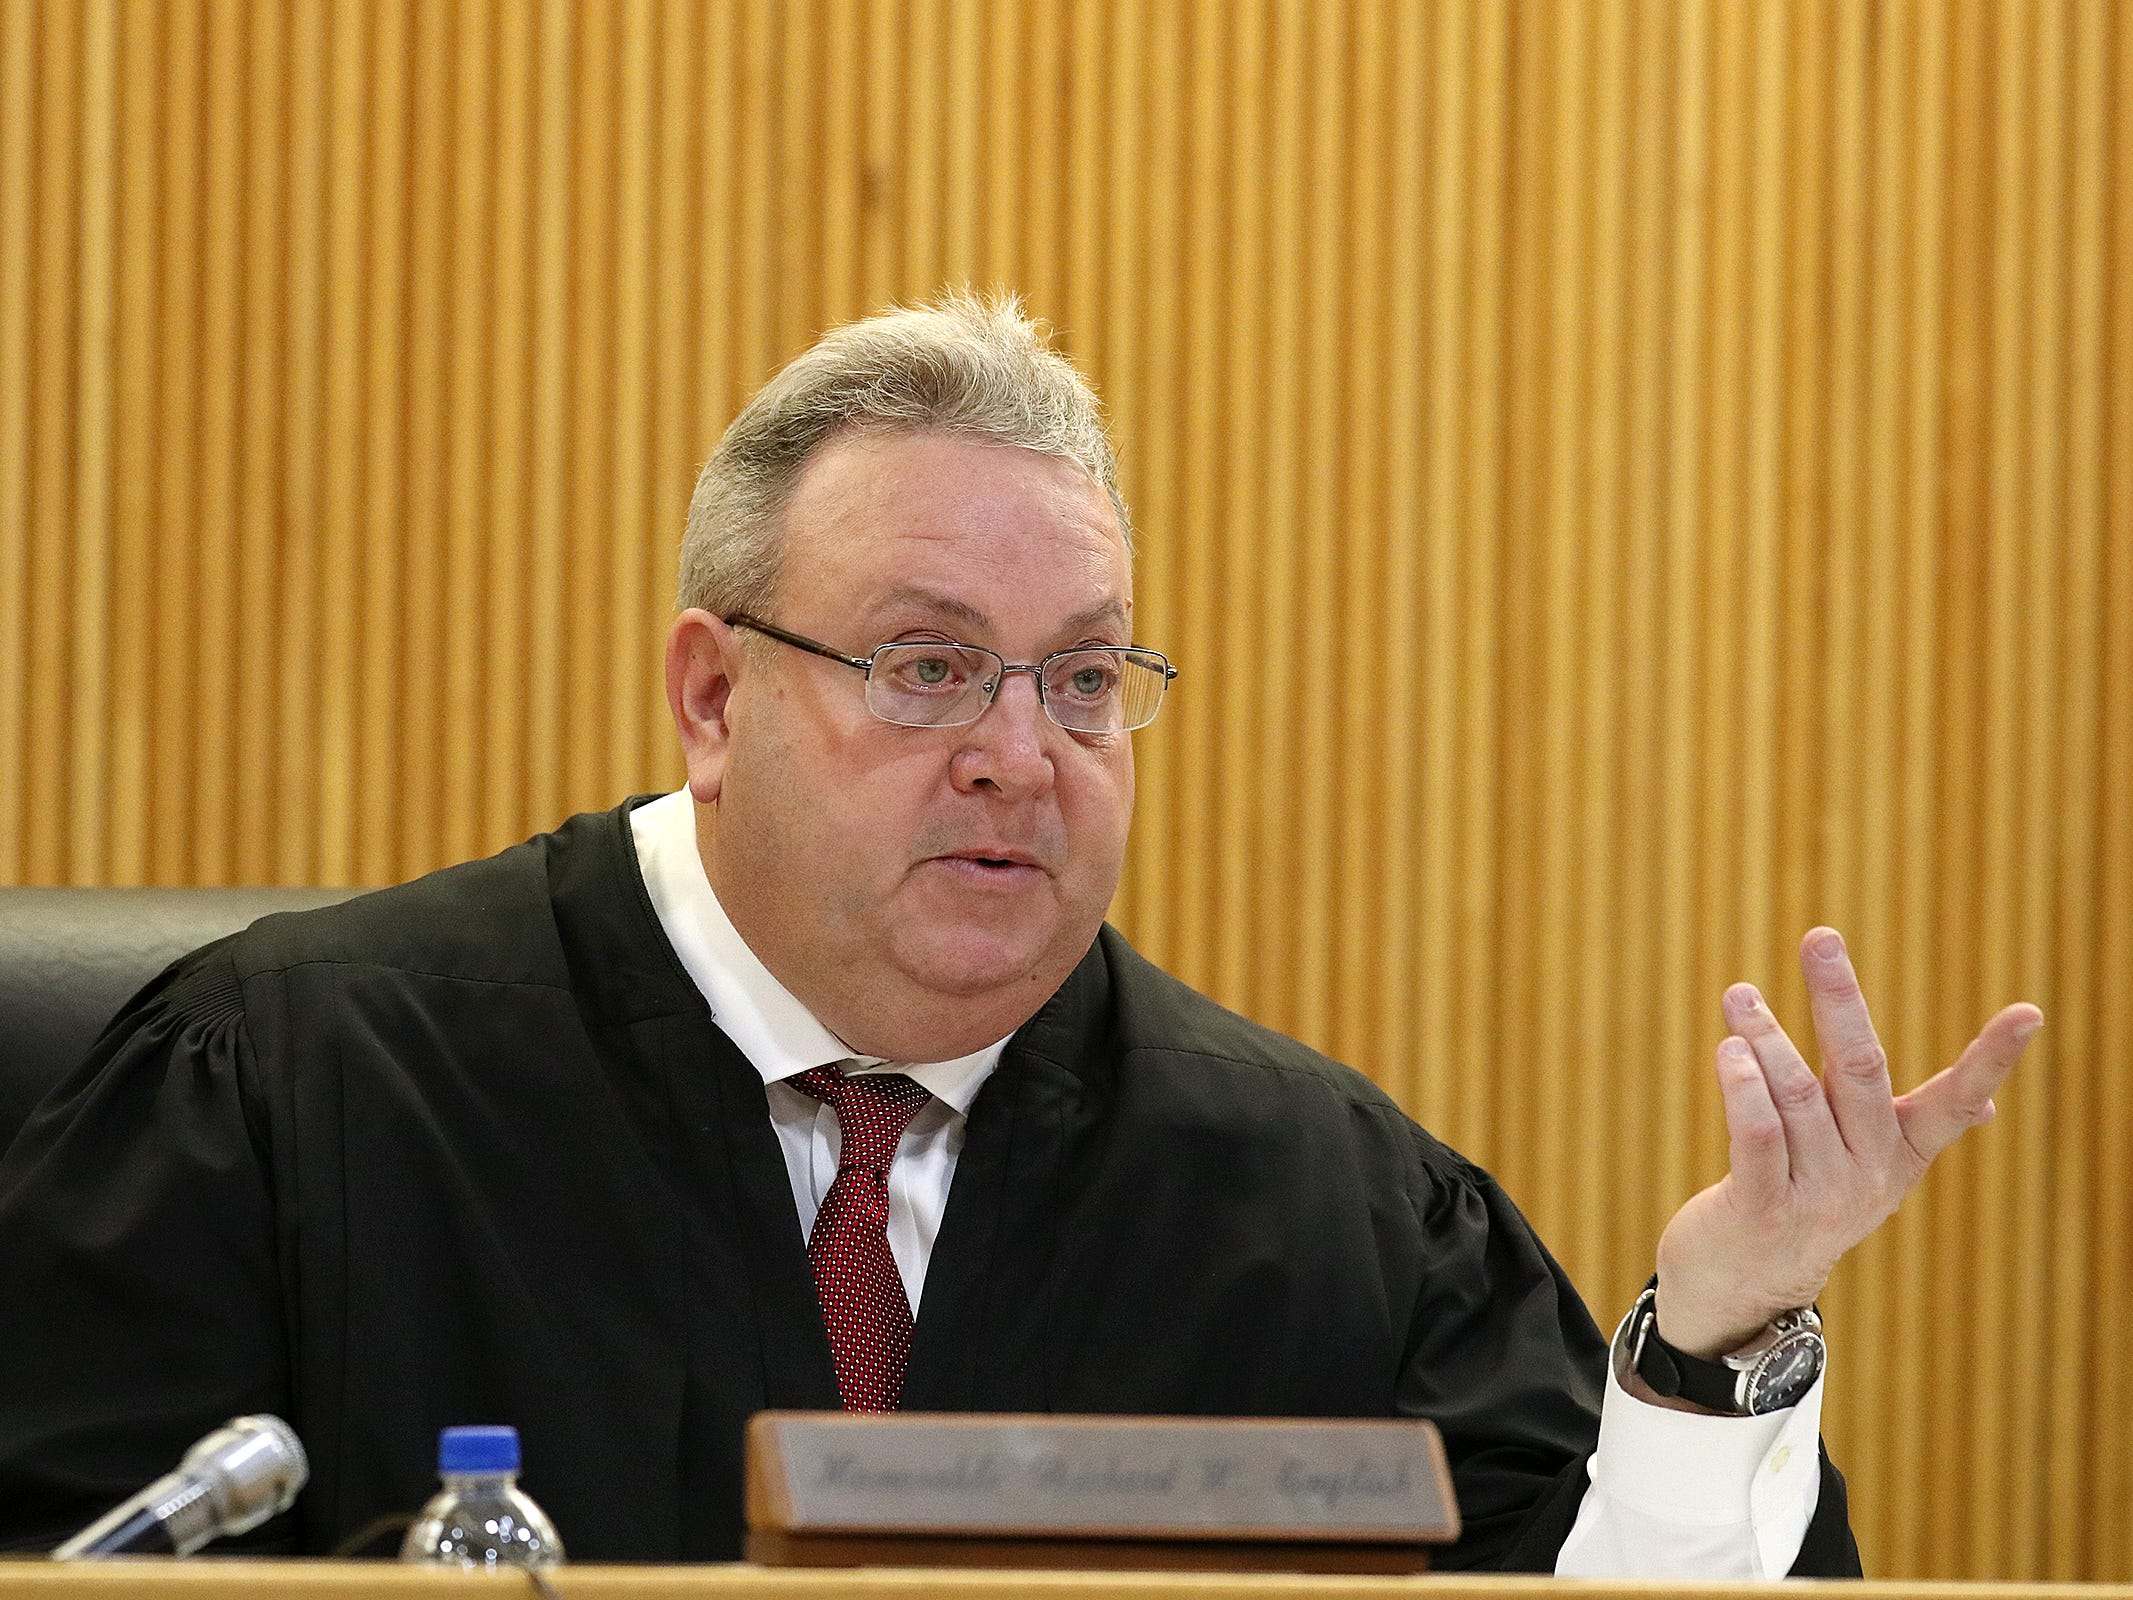 Superior Court Judge Richard W. English rejects a motion for a mistrial during the trial of Liam McAtasney, who is charged with the murder of former high school classmate, Sarah Stern, before Superior Court Judge Richard W. English at the Monmouth County Courthouse in Freehold, NJ Thursday, February 14, 2019. The judge was considering a motion from the defense for a mistrial after it was discovered that two jurors, who were later dismissed, were communicating on Facebook Messenger.